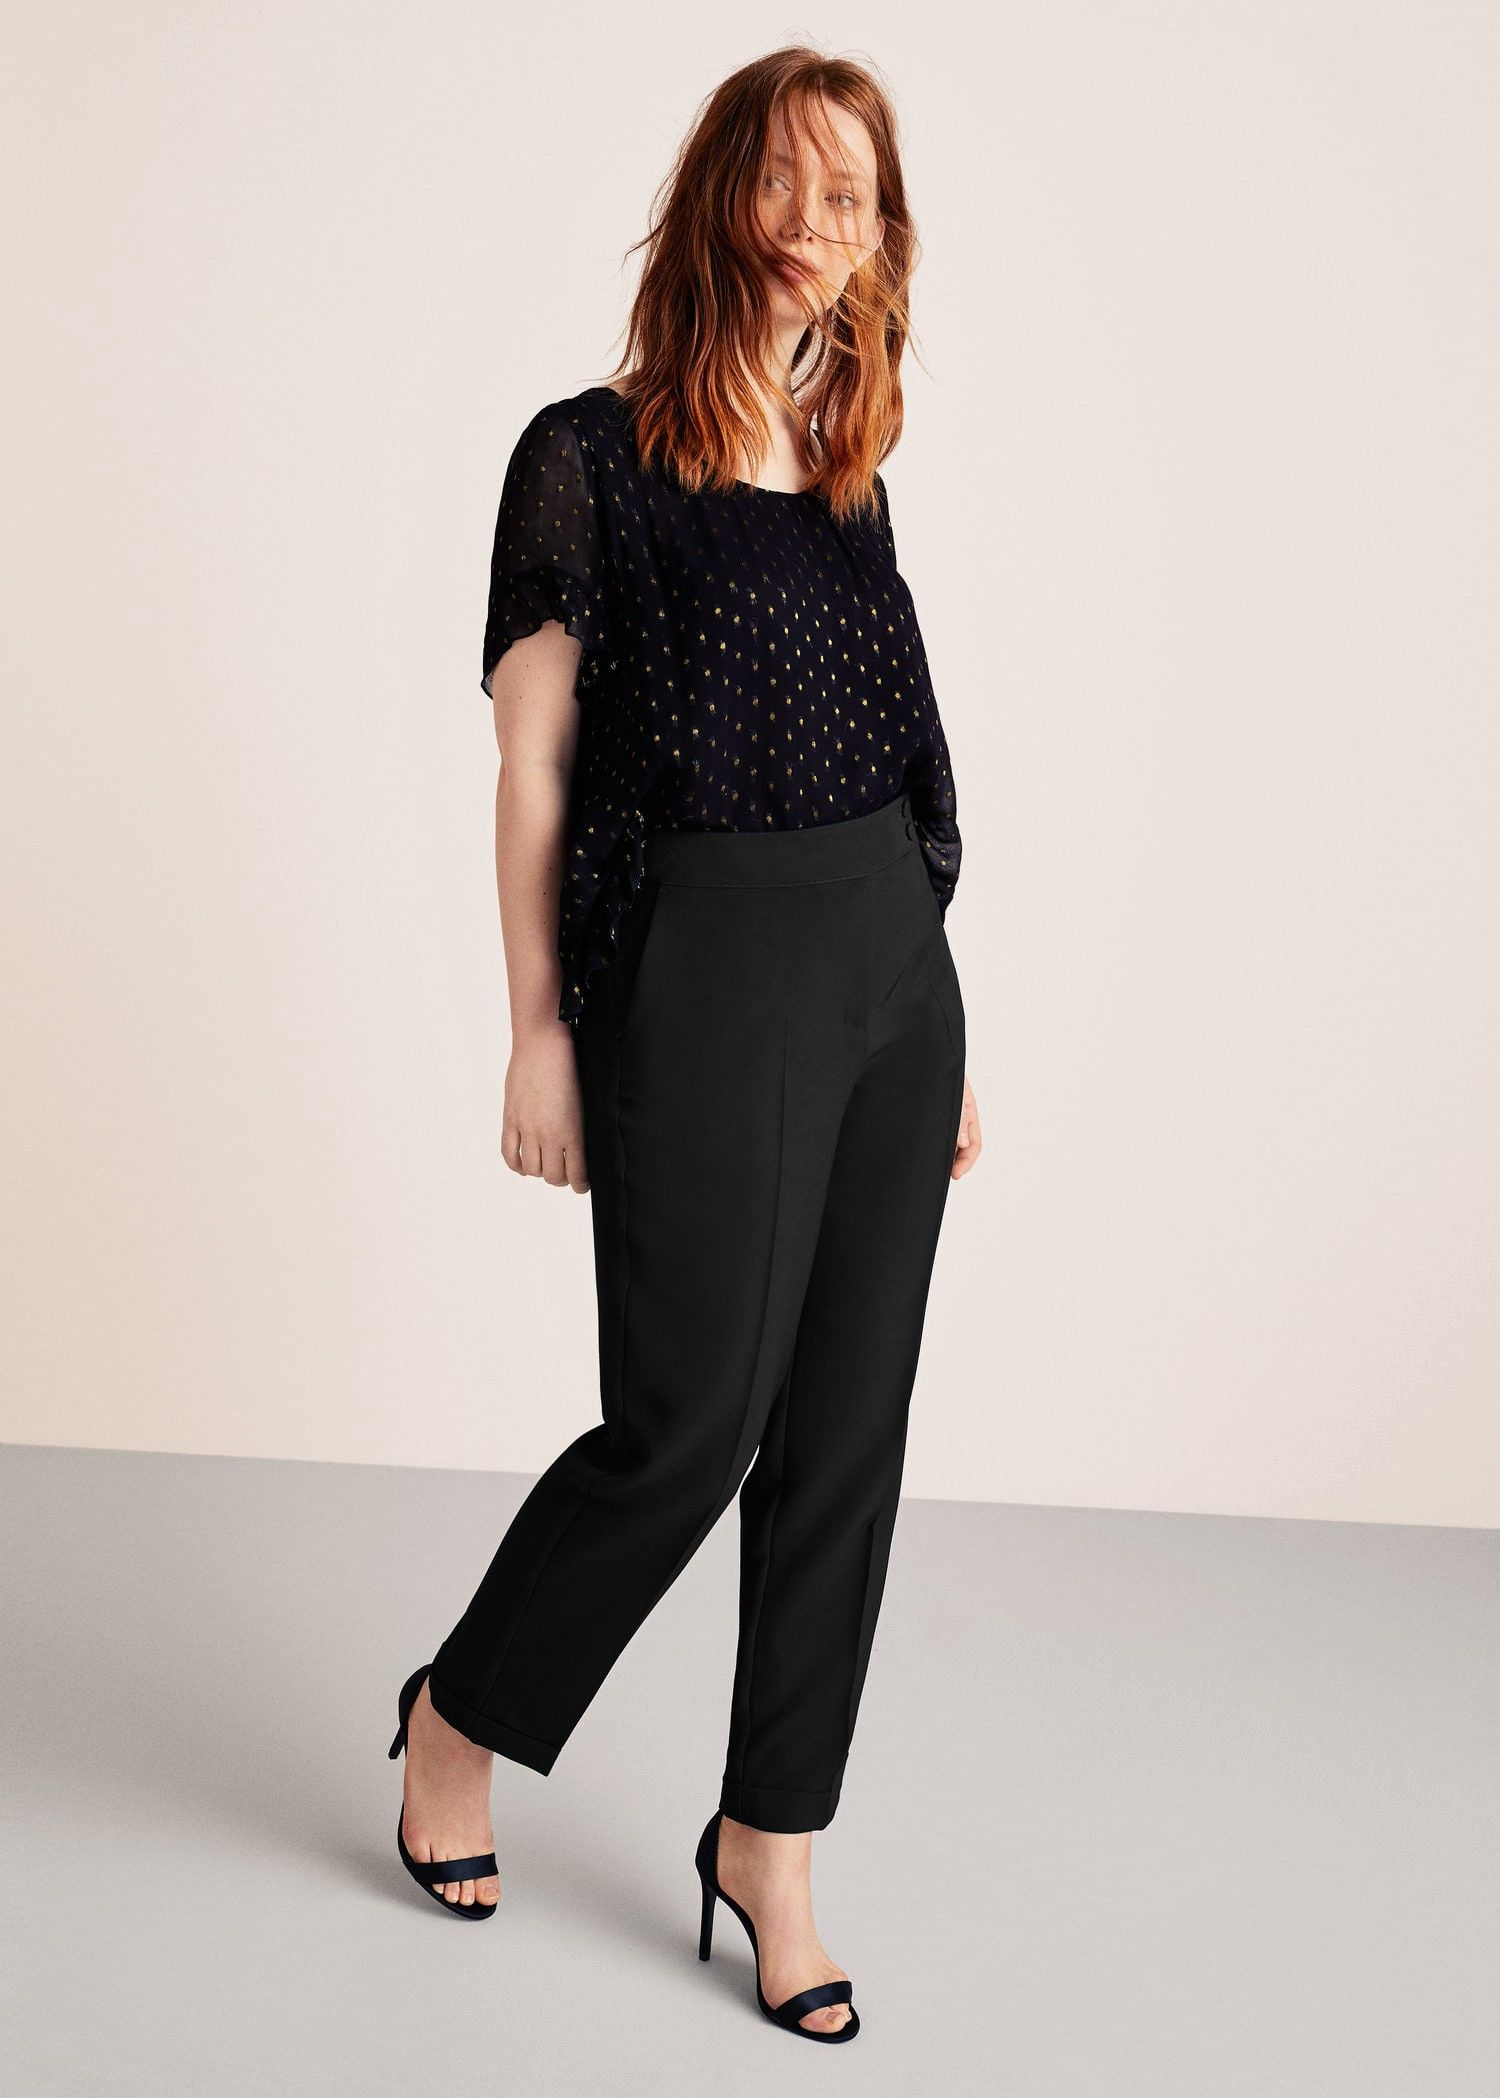 3947c825adc60 Flowy trousers by Mango in 2018   Products   Pinterest   Trousers ...